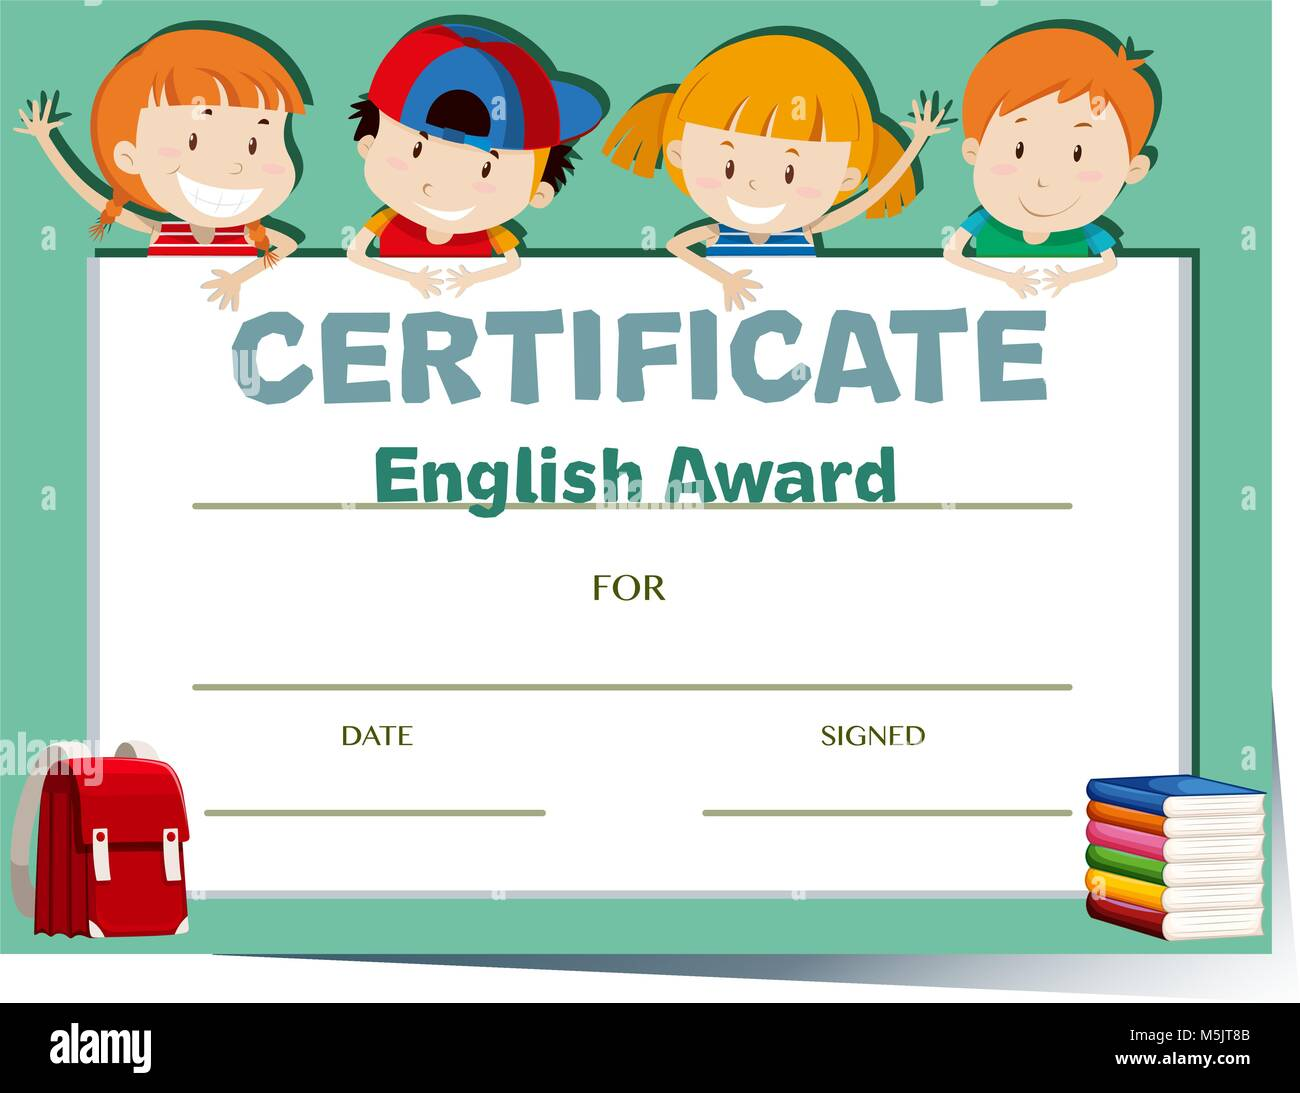 Certificate Template With Happy Kids Illustration Stock Vector Art